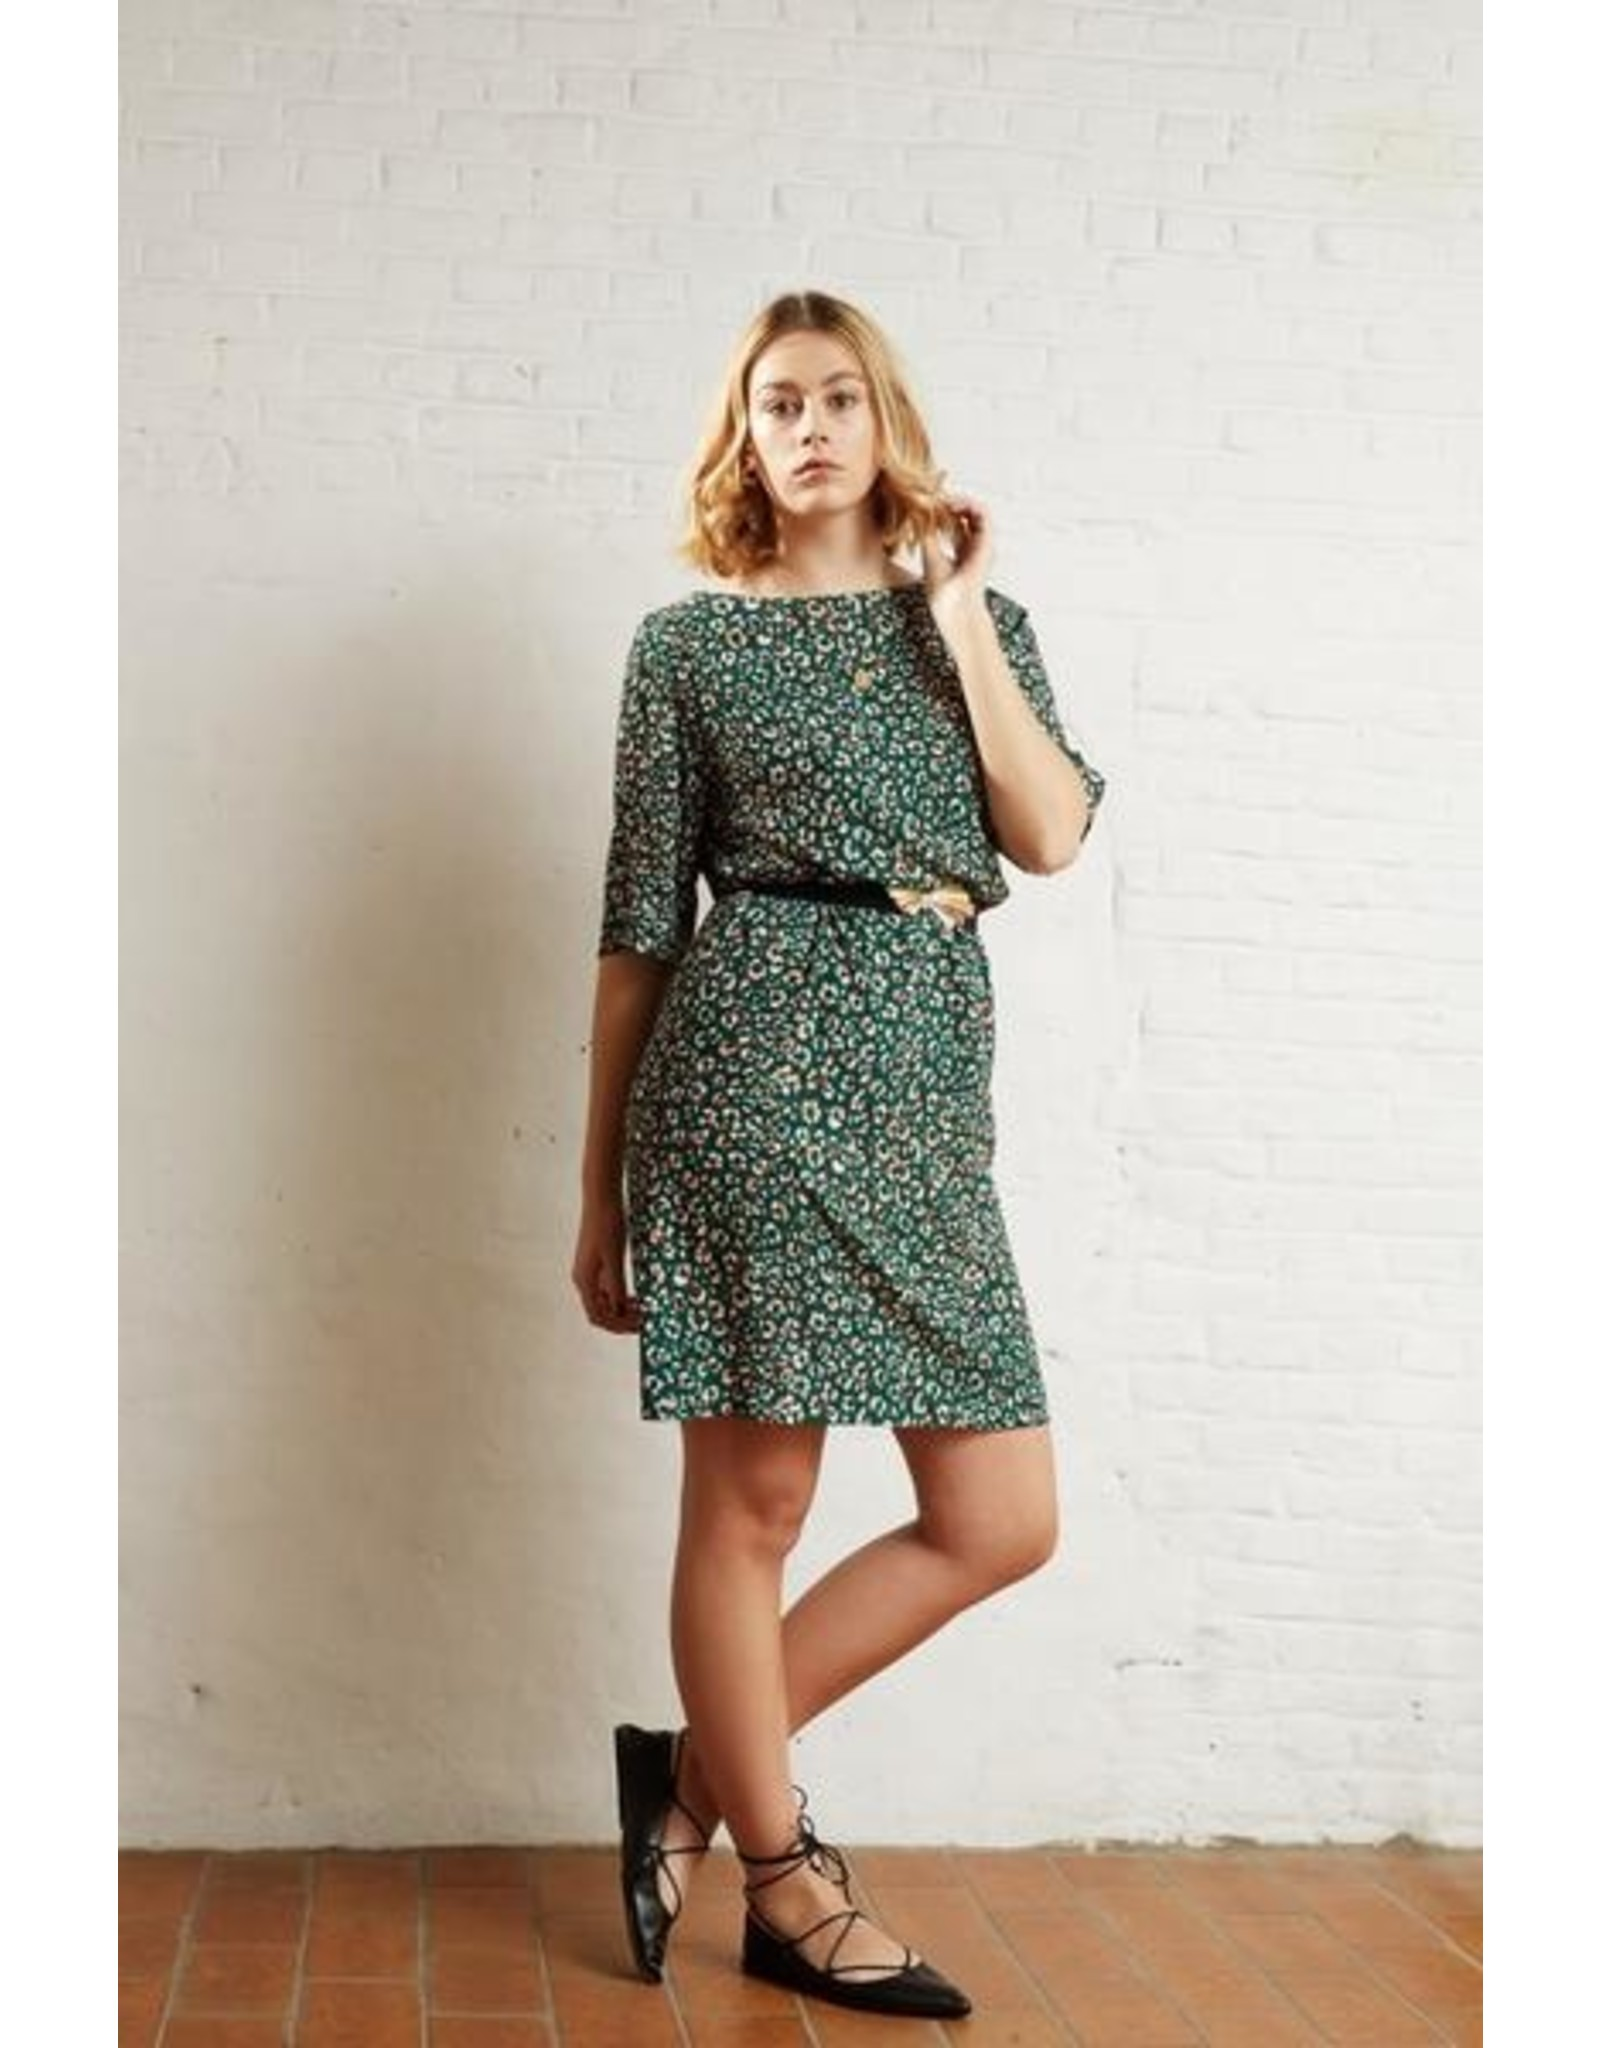 Atelier Jupe Green viscose with animal